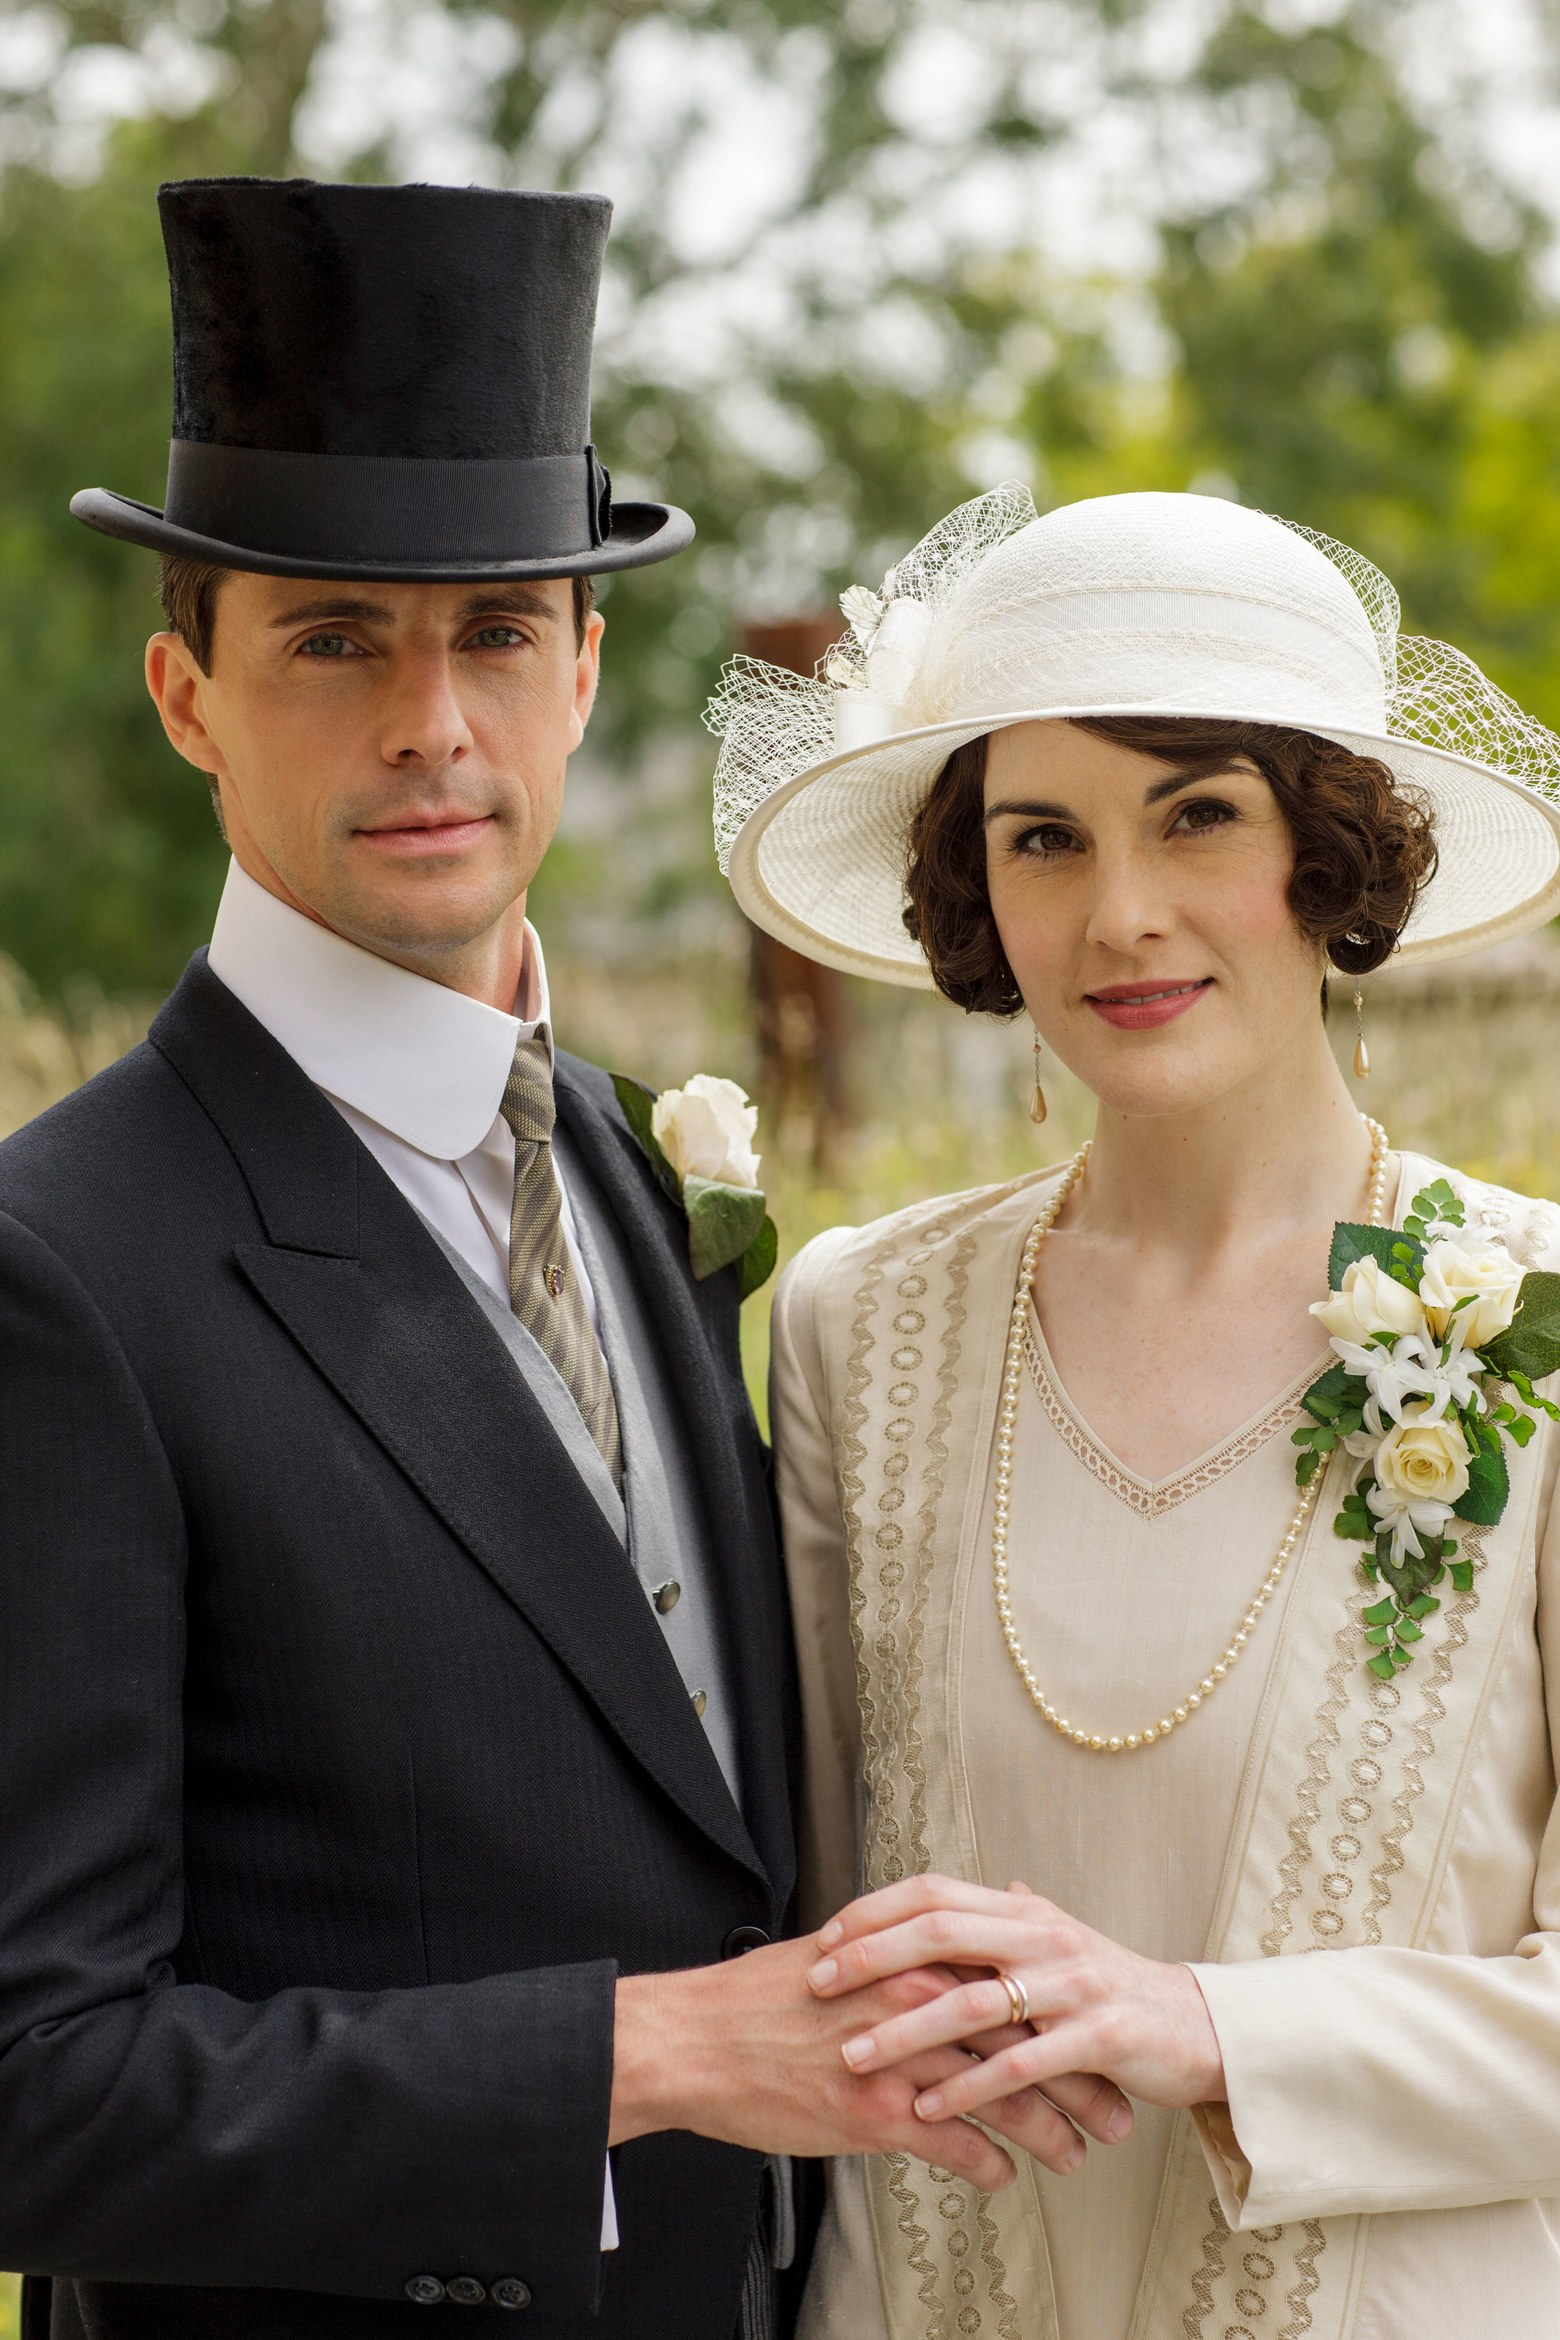 Part of the universal charm of Downton Abbey is the beautiful costuming that reflects both the period the production is taking place and the characters wearing these costumes. The nuance of design and detail is remarkable and ever changing as the storyline progresses.